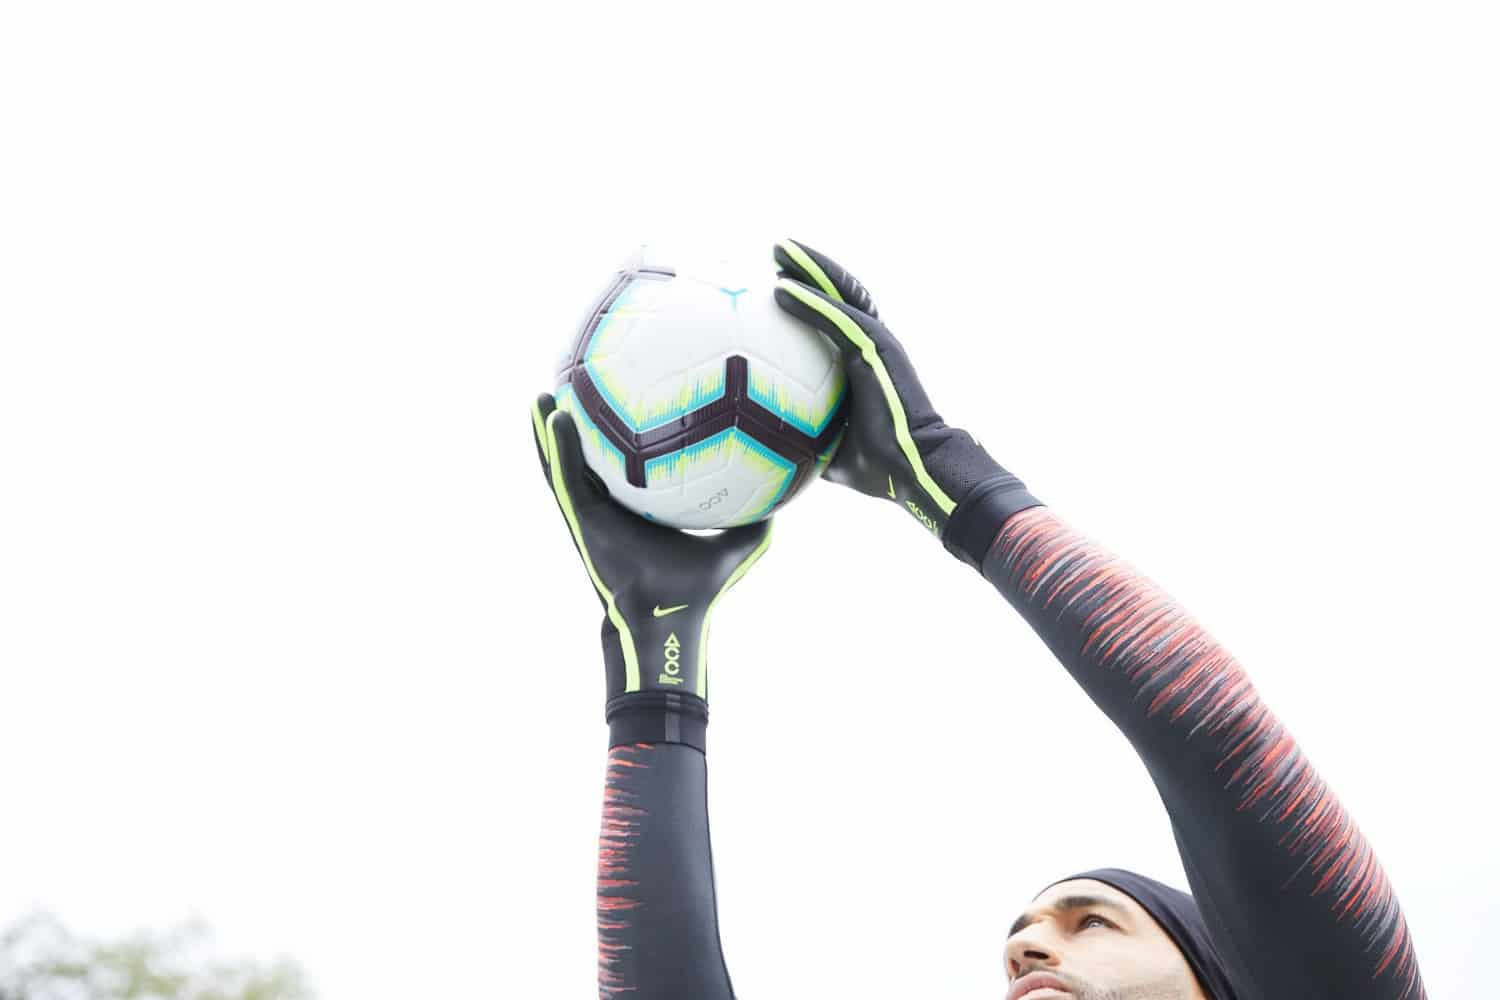 gants-gardien-football-Nike-Mercurial-Touch-Elite-img6